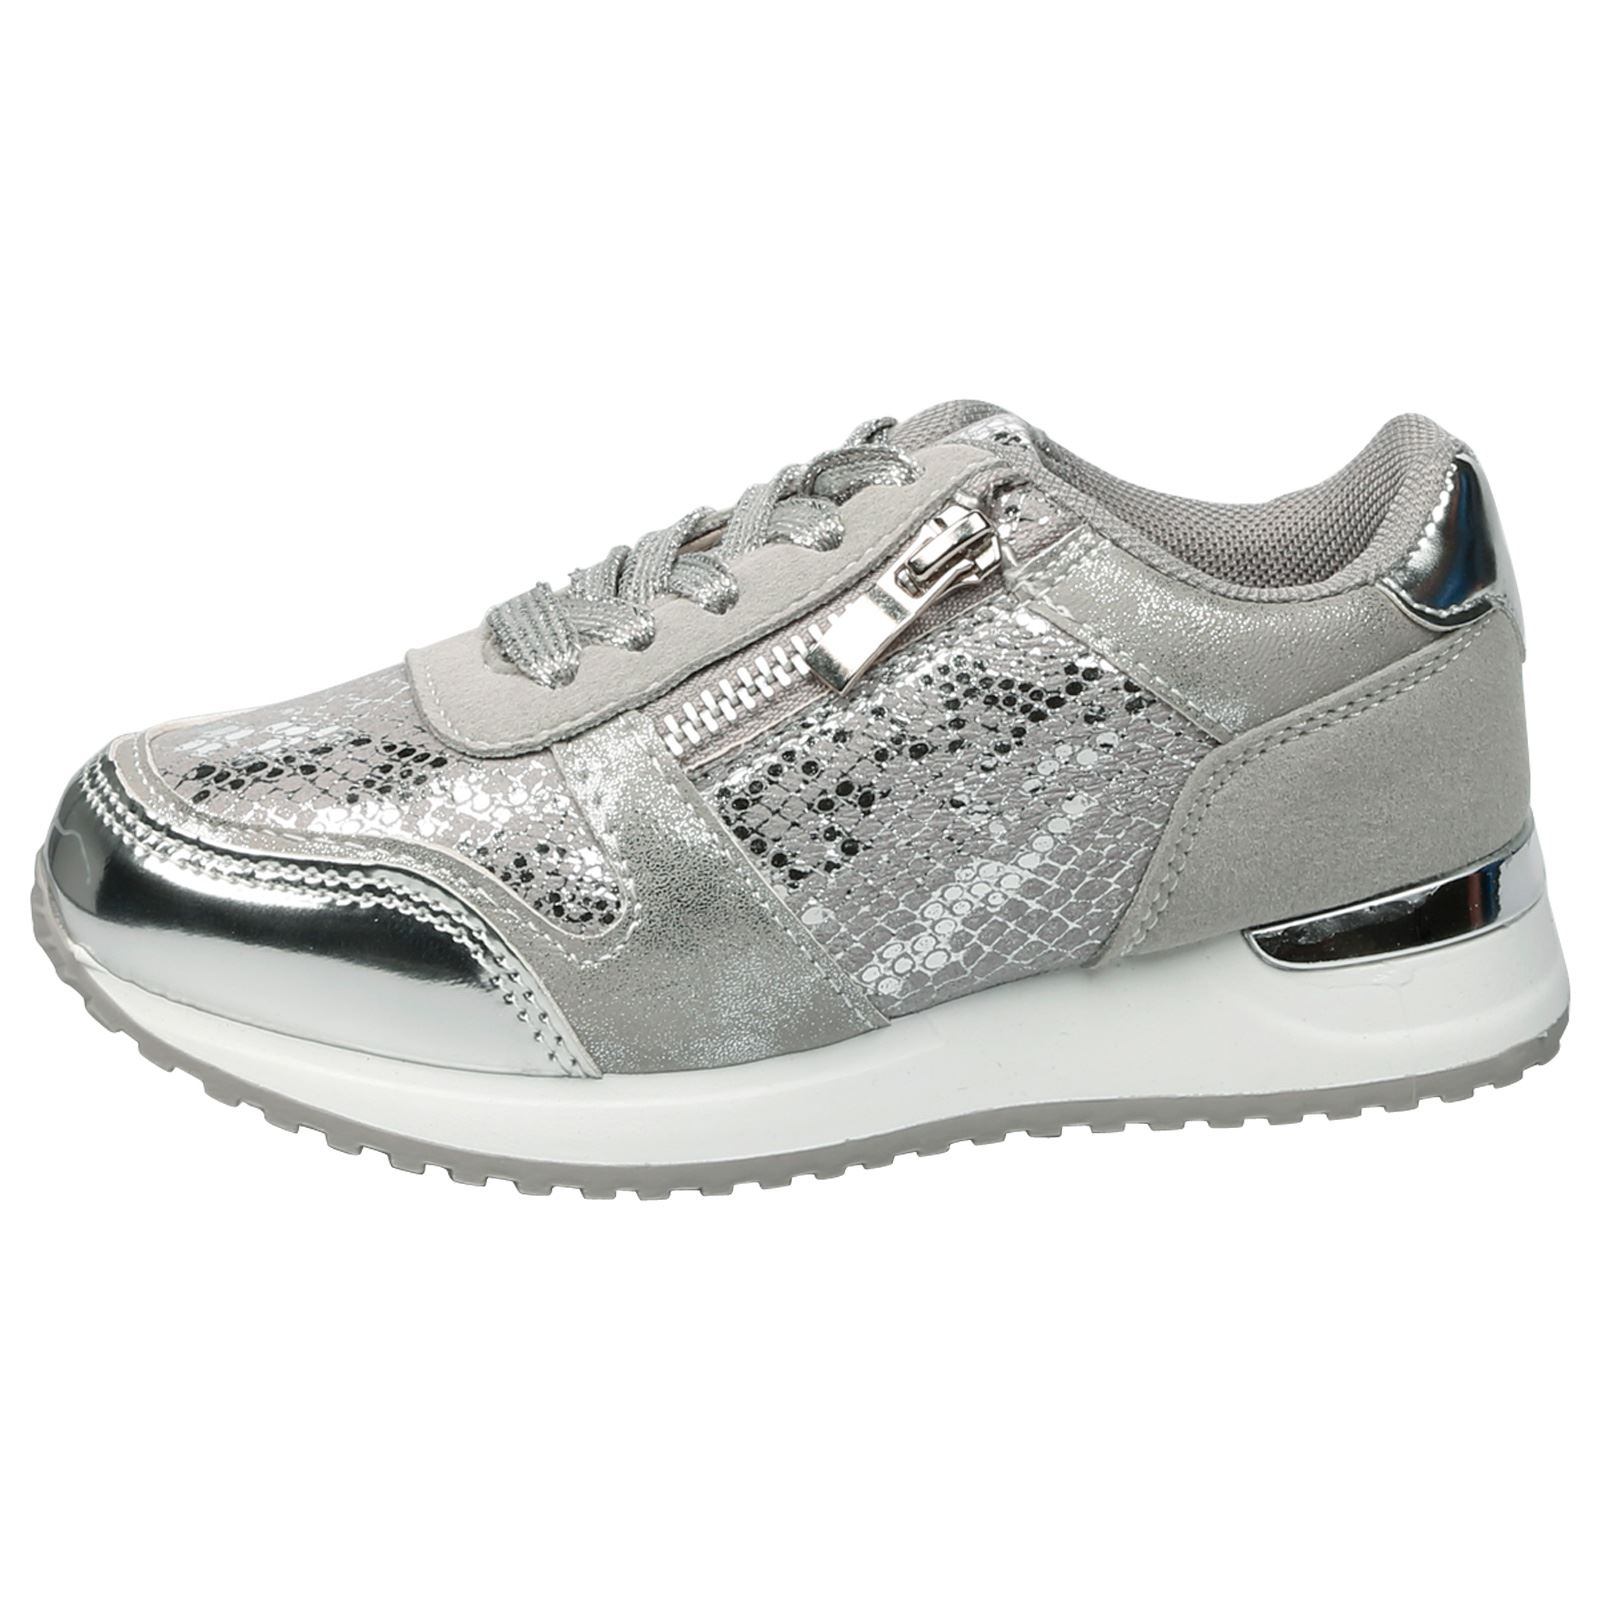 KIDS GIRLS LACE UP TRAINERS SNEAKERS PUMPS SHIMMER SPORTS SCHOOL STYLE SIZE NEW